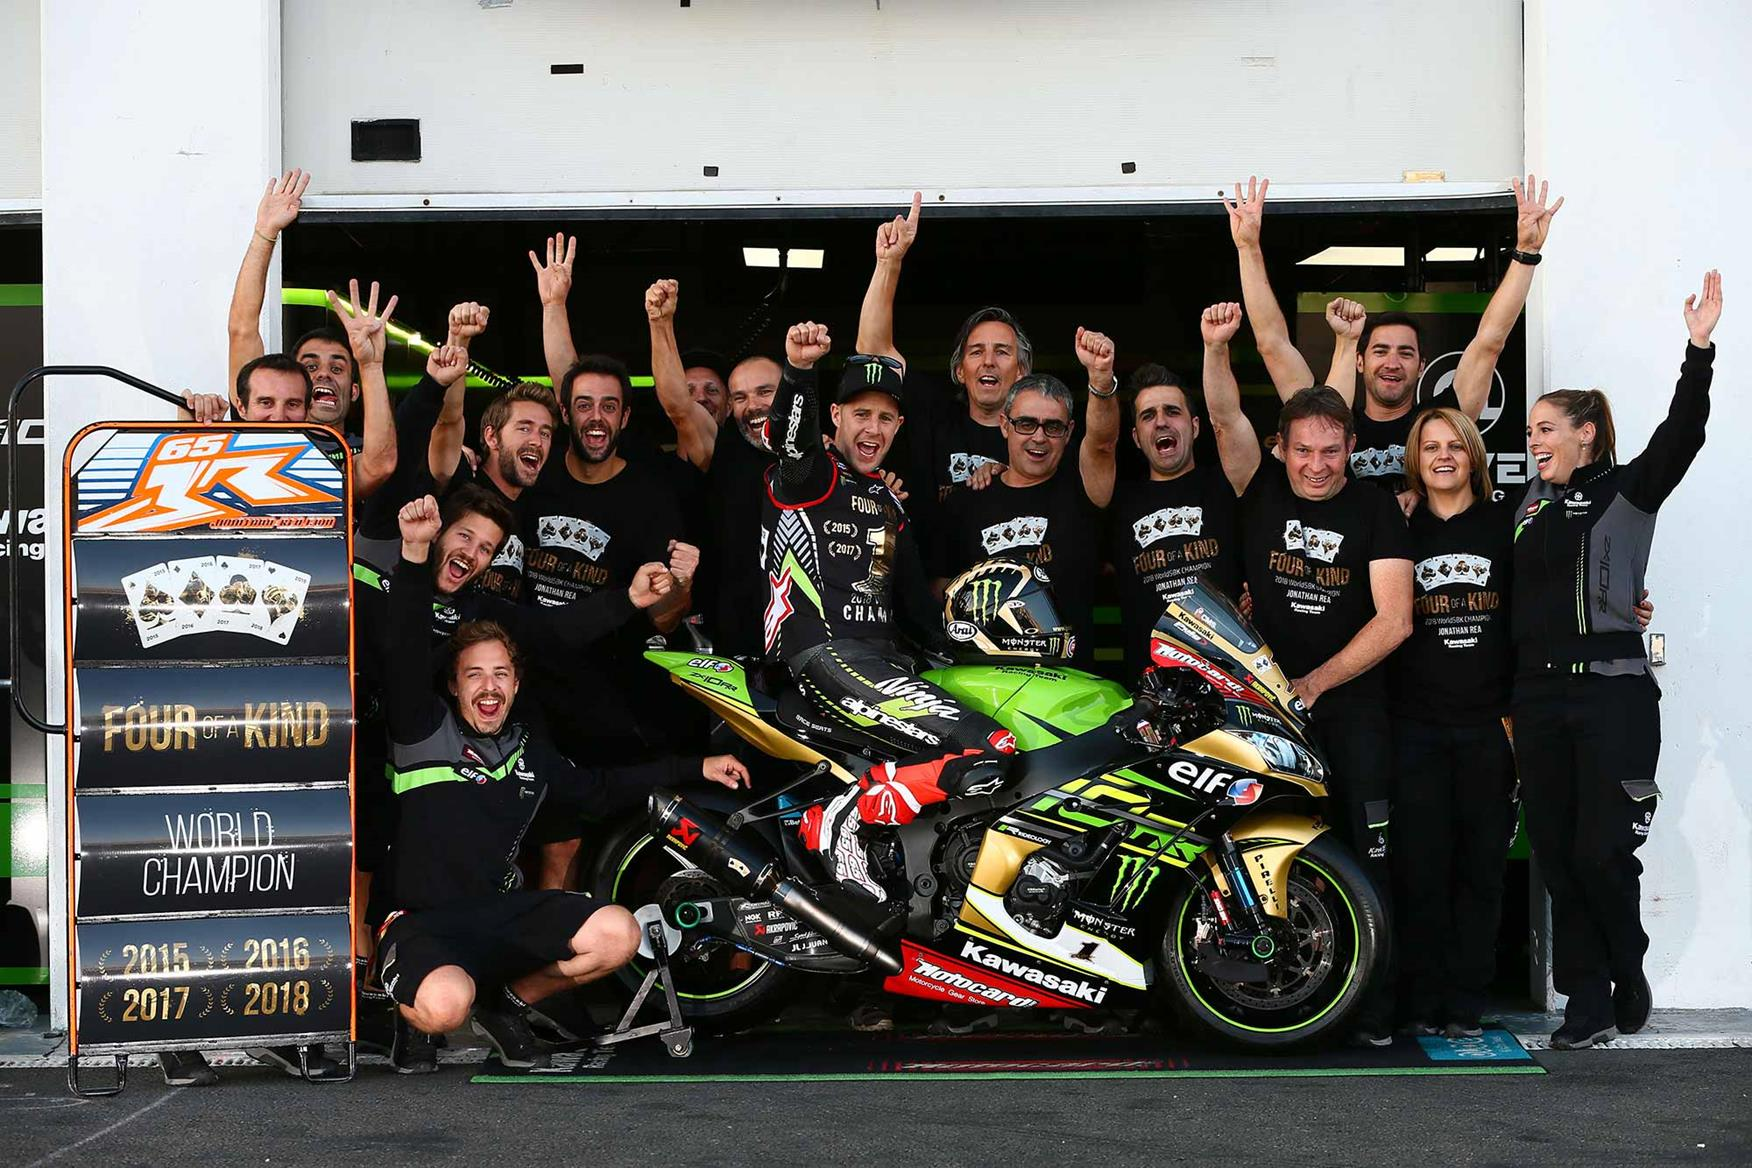 Rea becomes the most successful WSB rider of all time